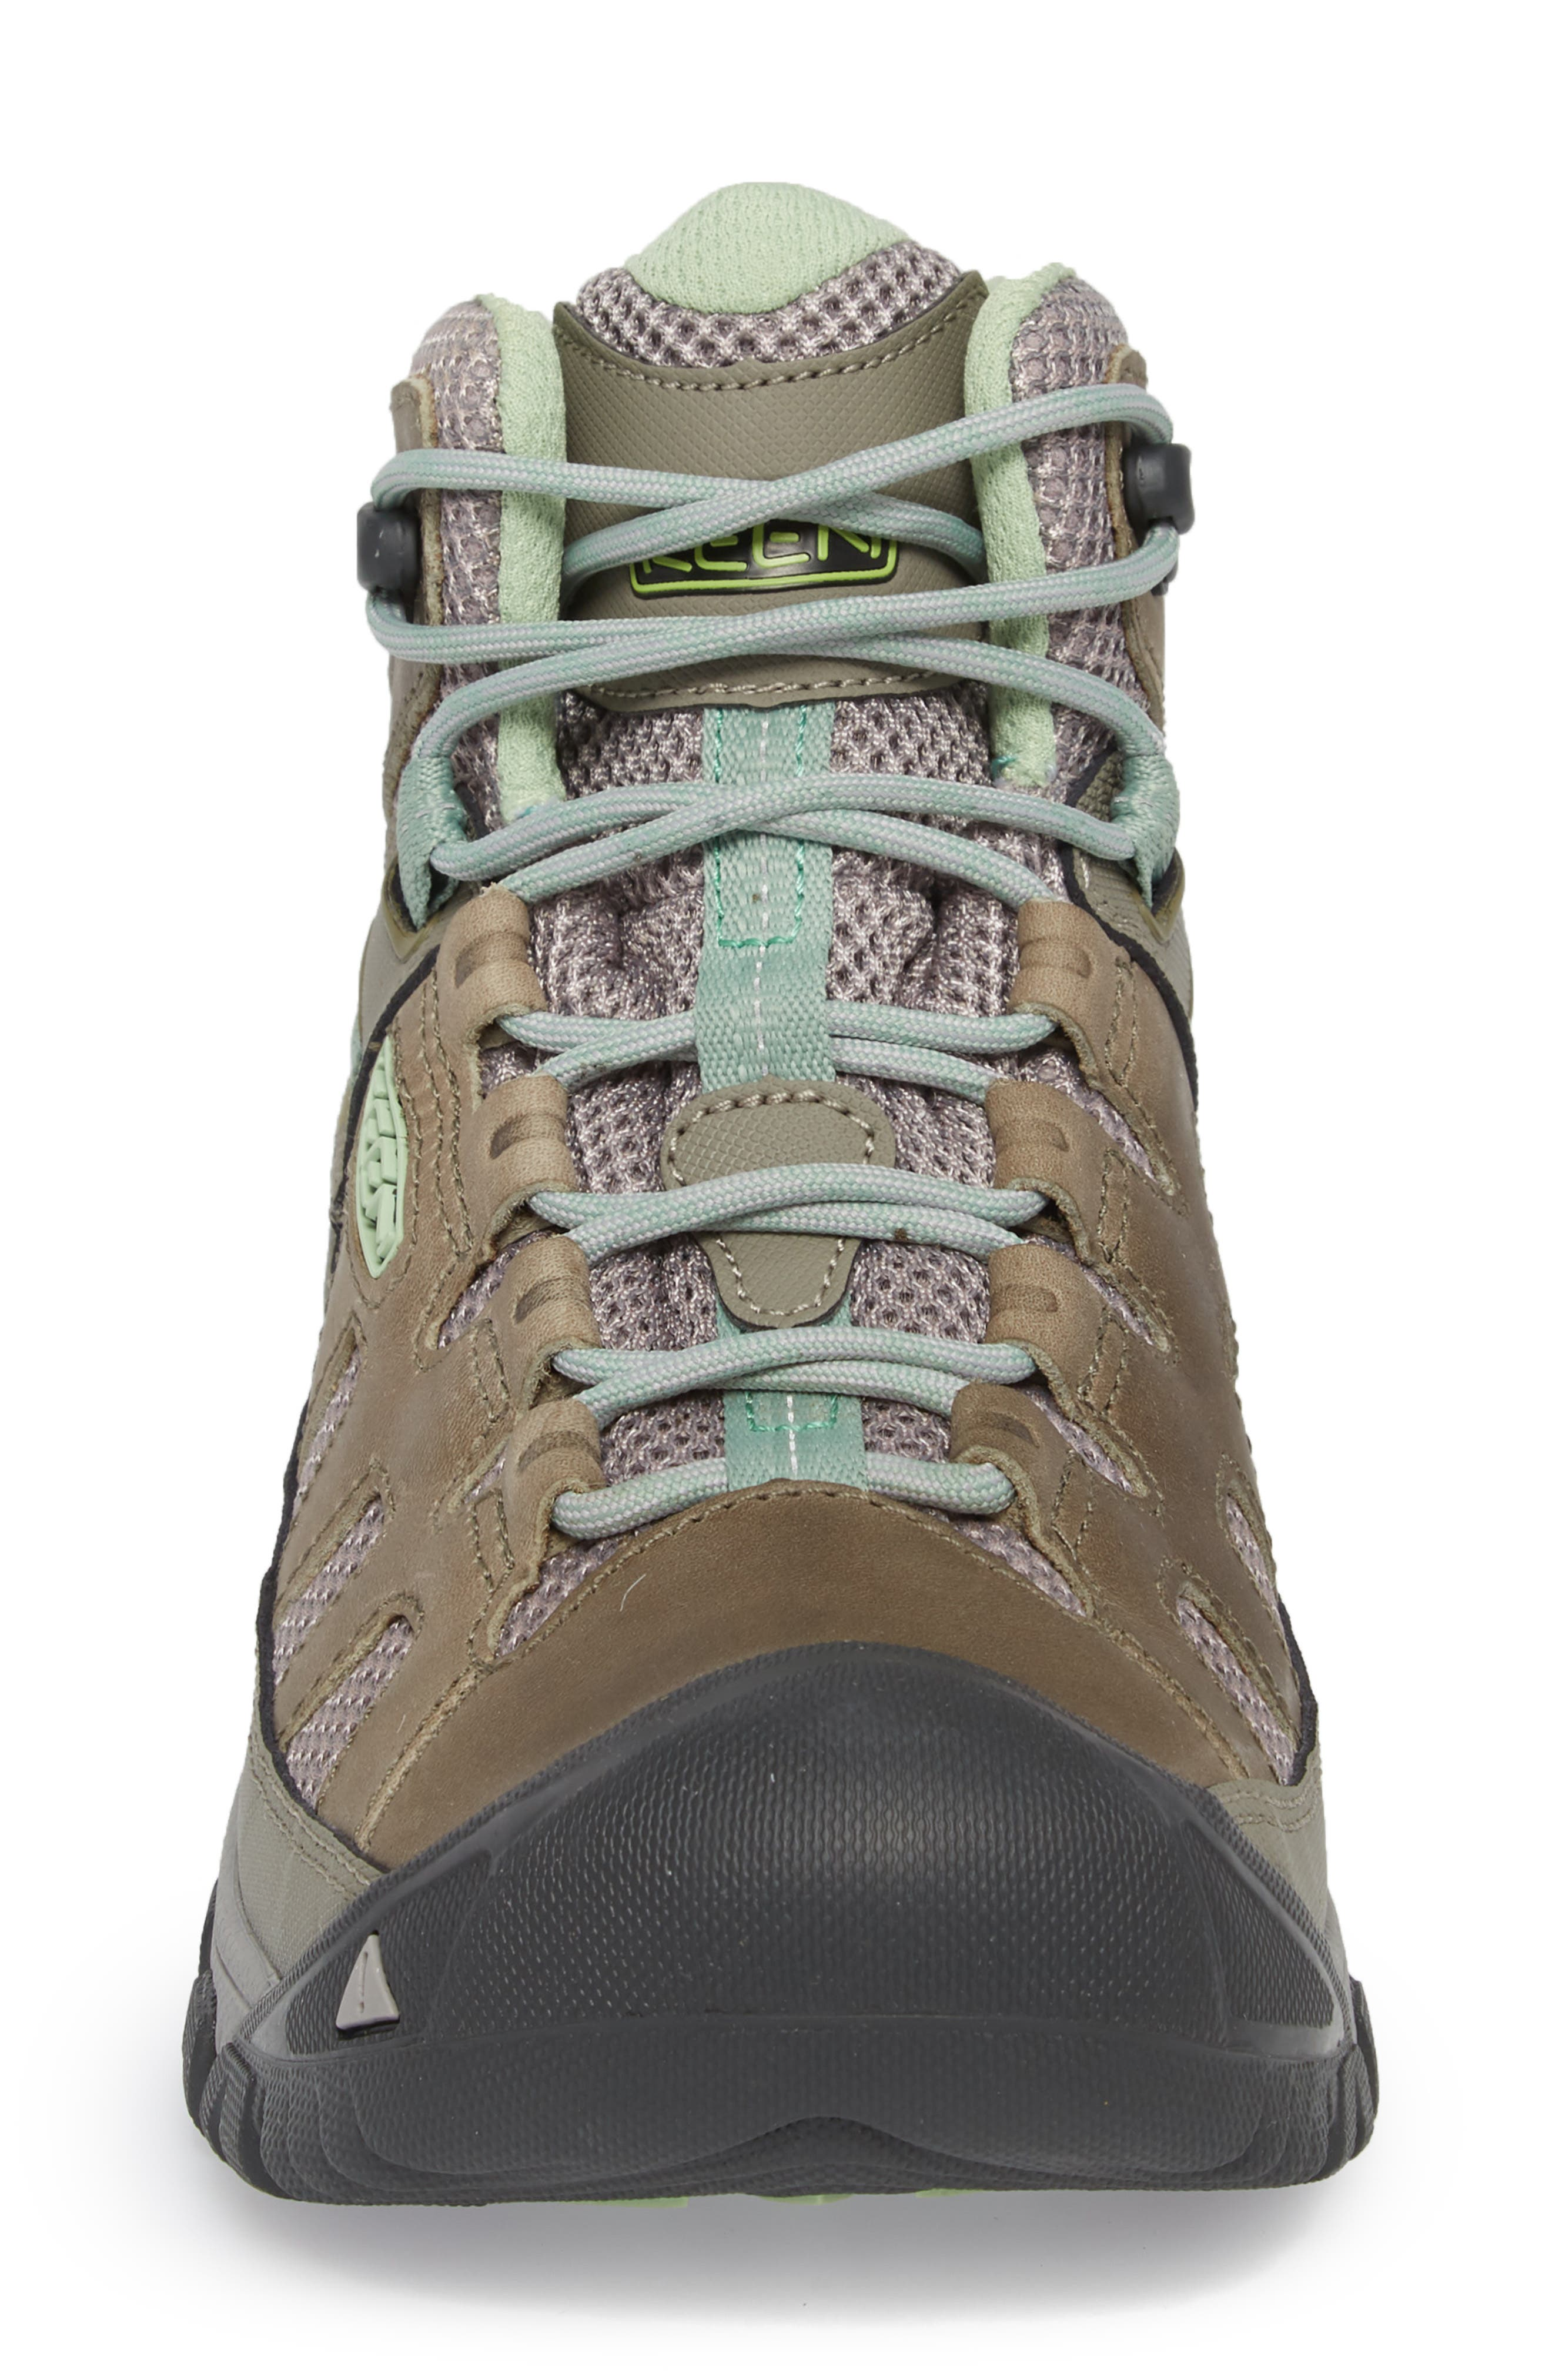 Targhee Vent Mid Hiking Shoe,                             Alternate thumbnail 4, color,                             Fumo/ Quiet Green Leather